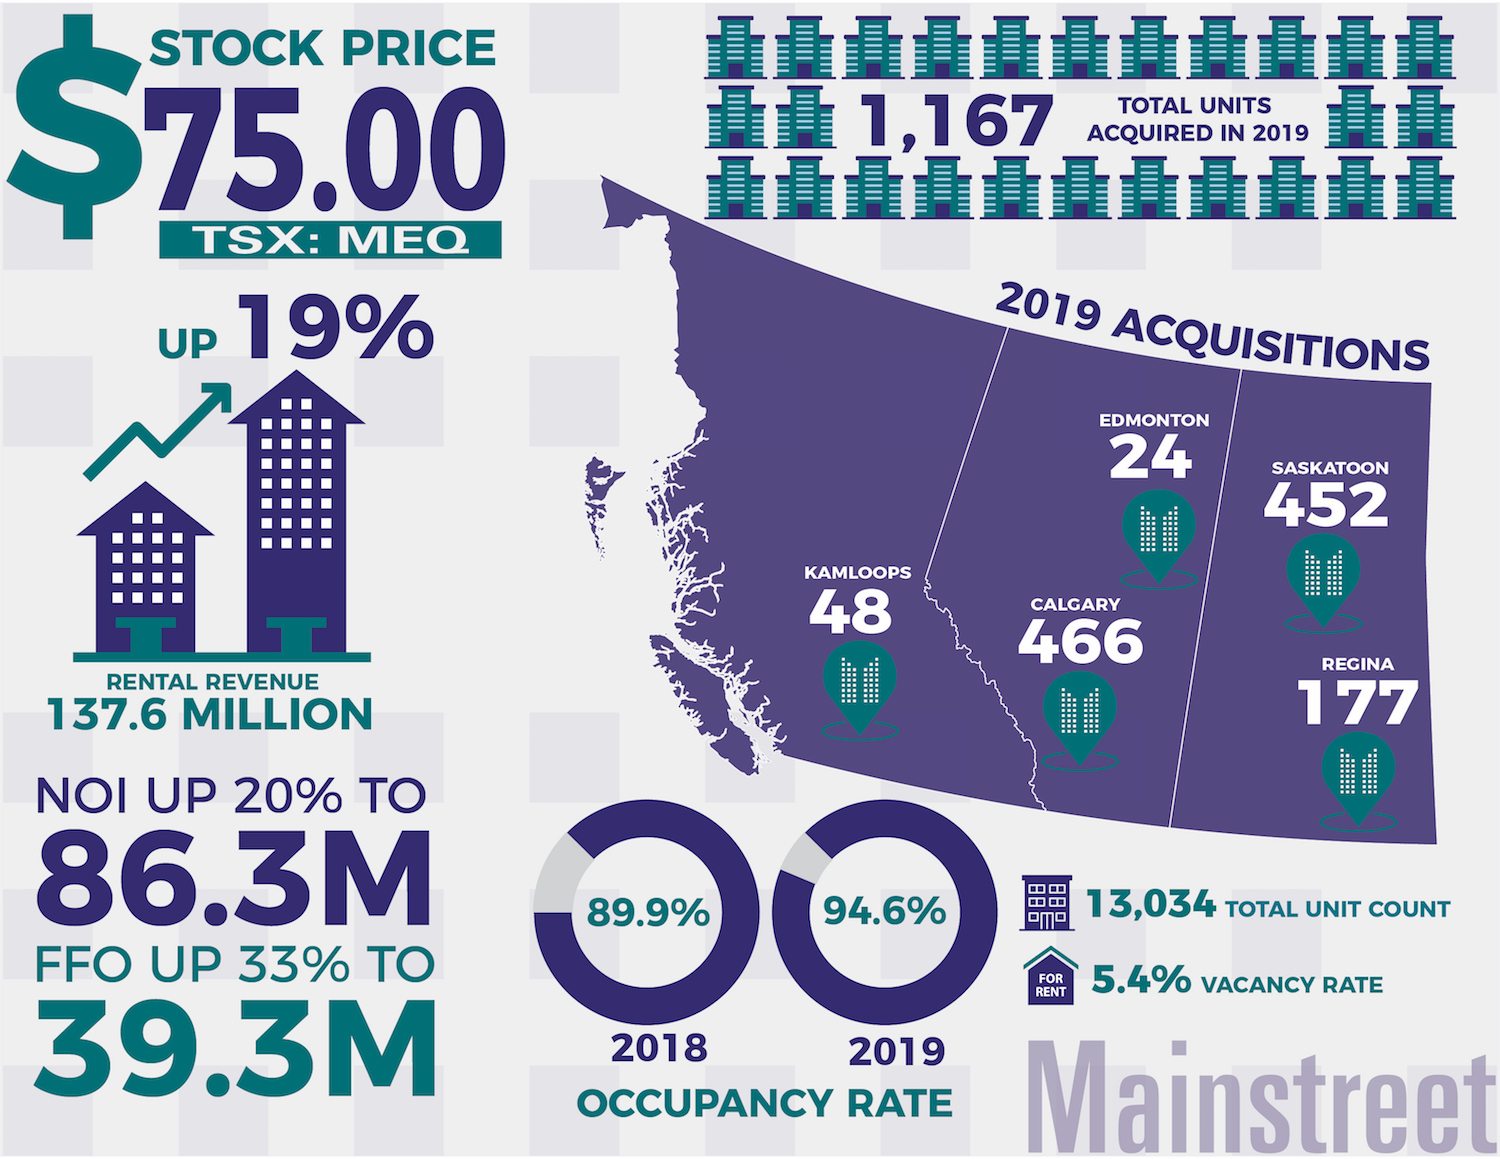 Mainstreet Equity Q4 2019 Infographic